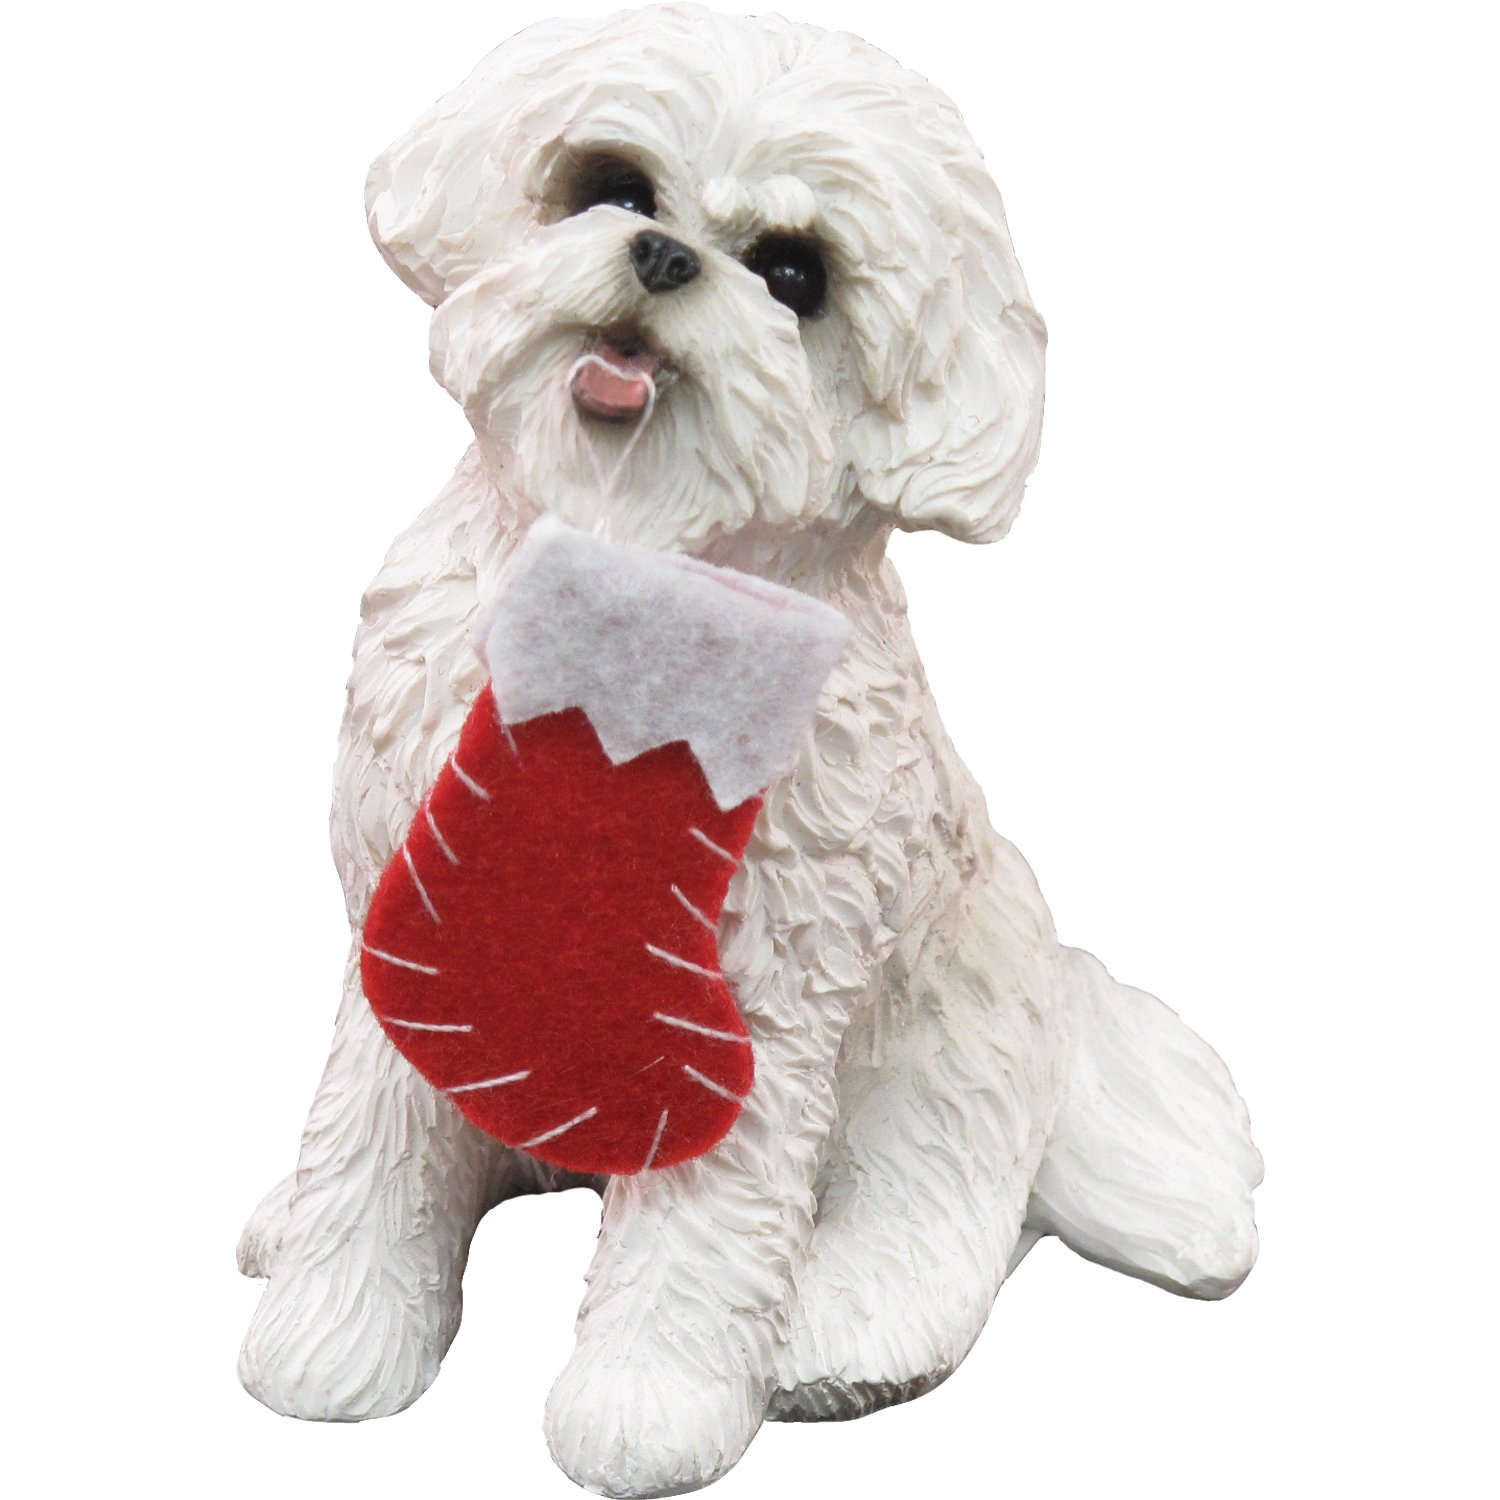 Sandicast Bichon Frise with Stocking Christmas Ornament